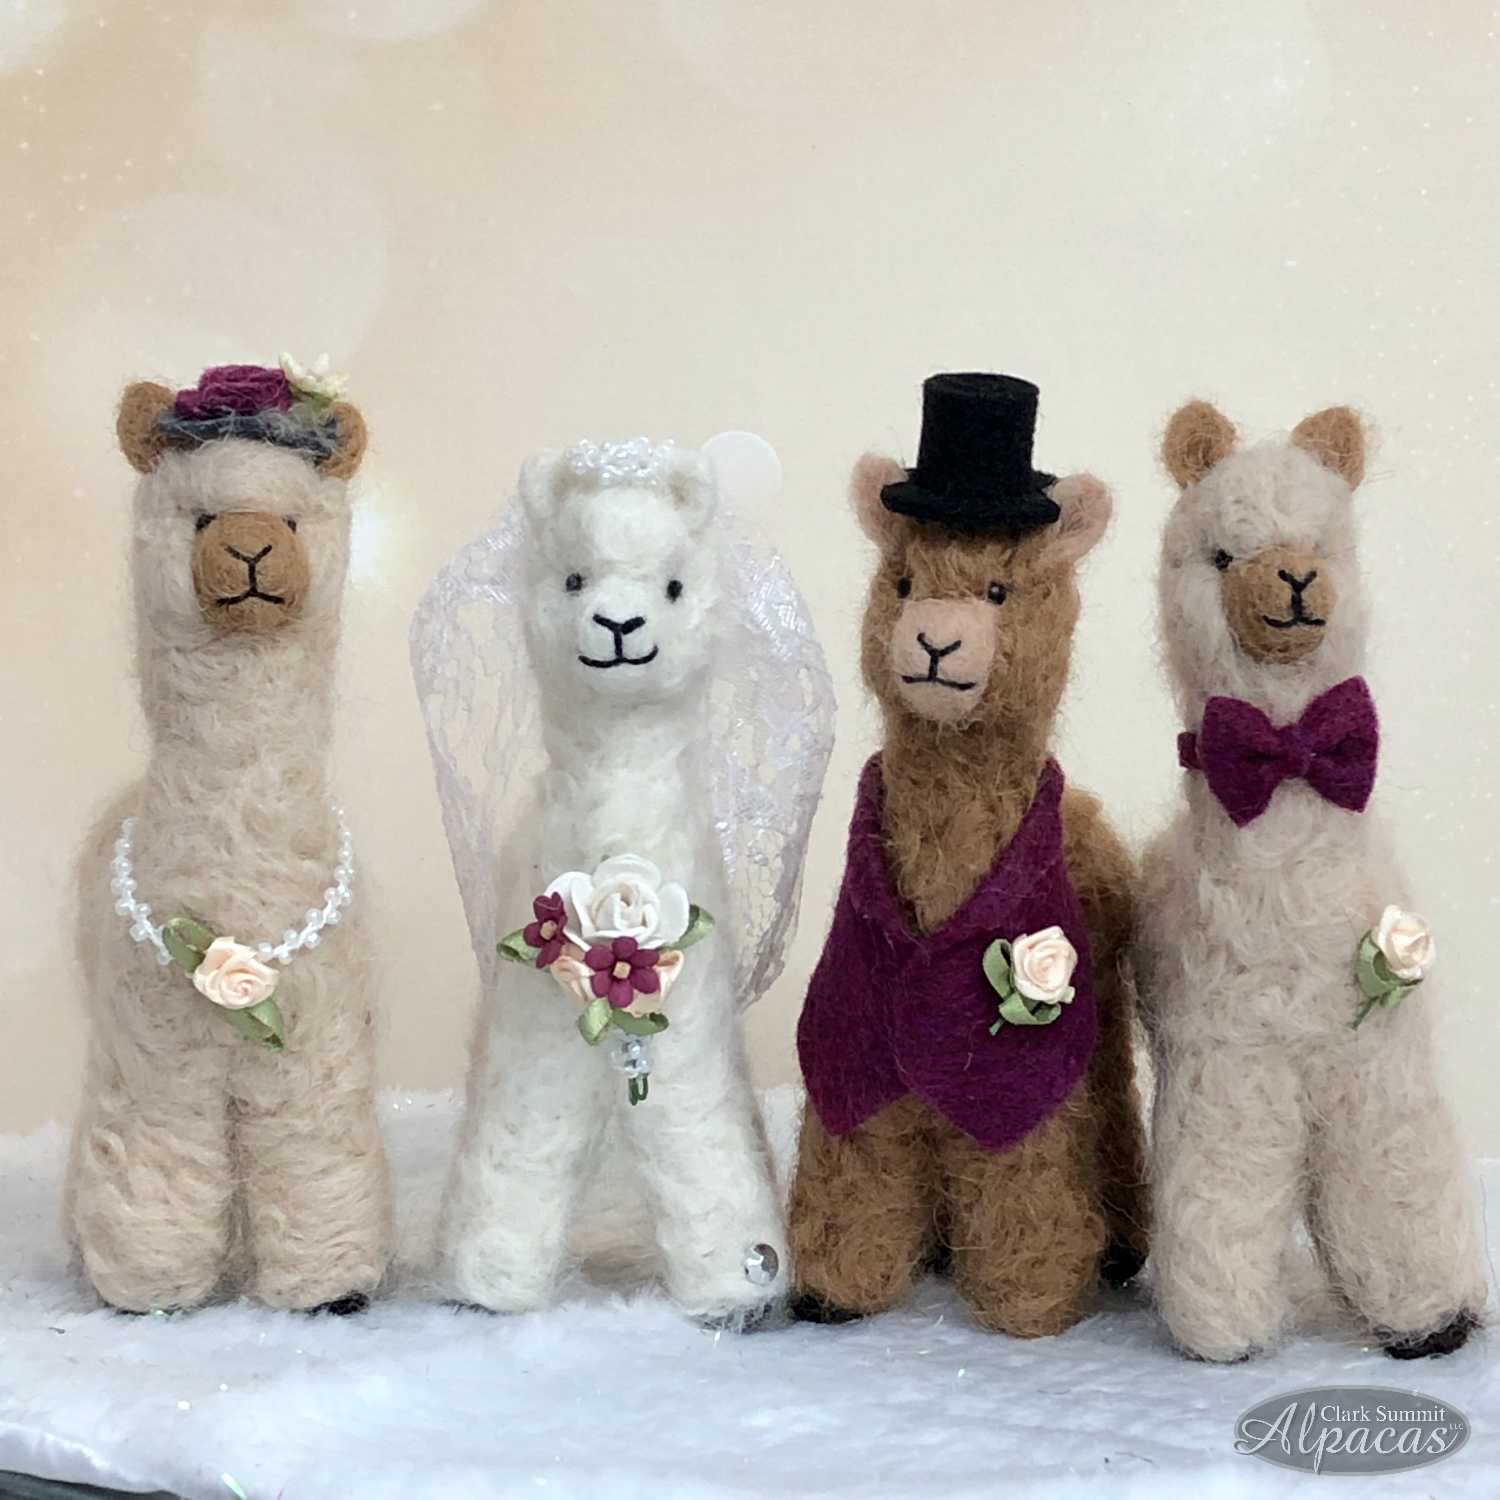 Image of Alpaca Bridal Party Customized Bride Groom Wedding Decor Cake Topper Alpaca Fiber